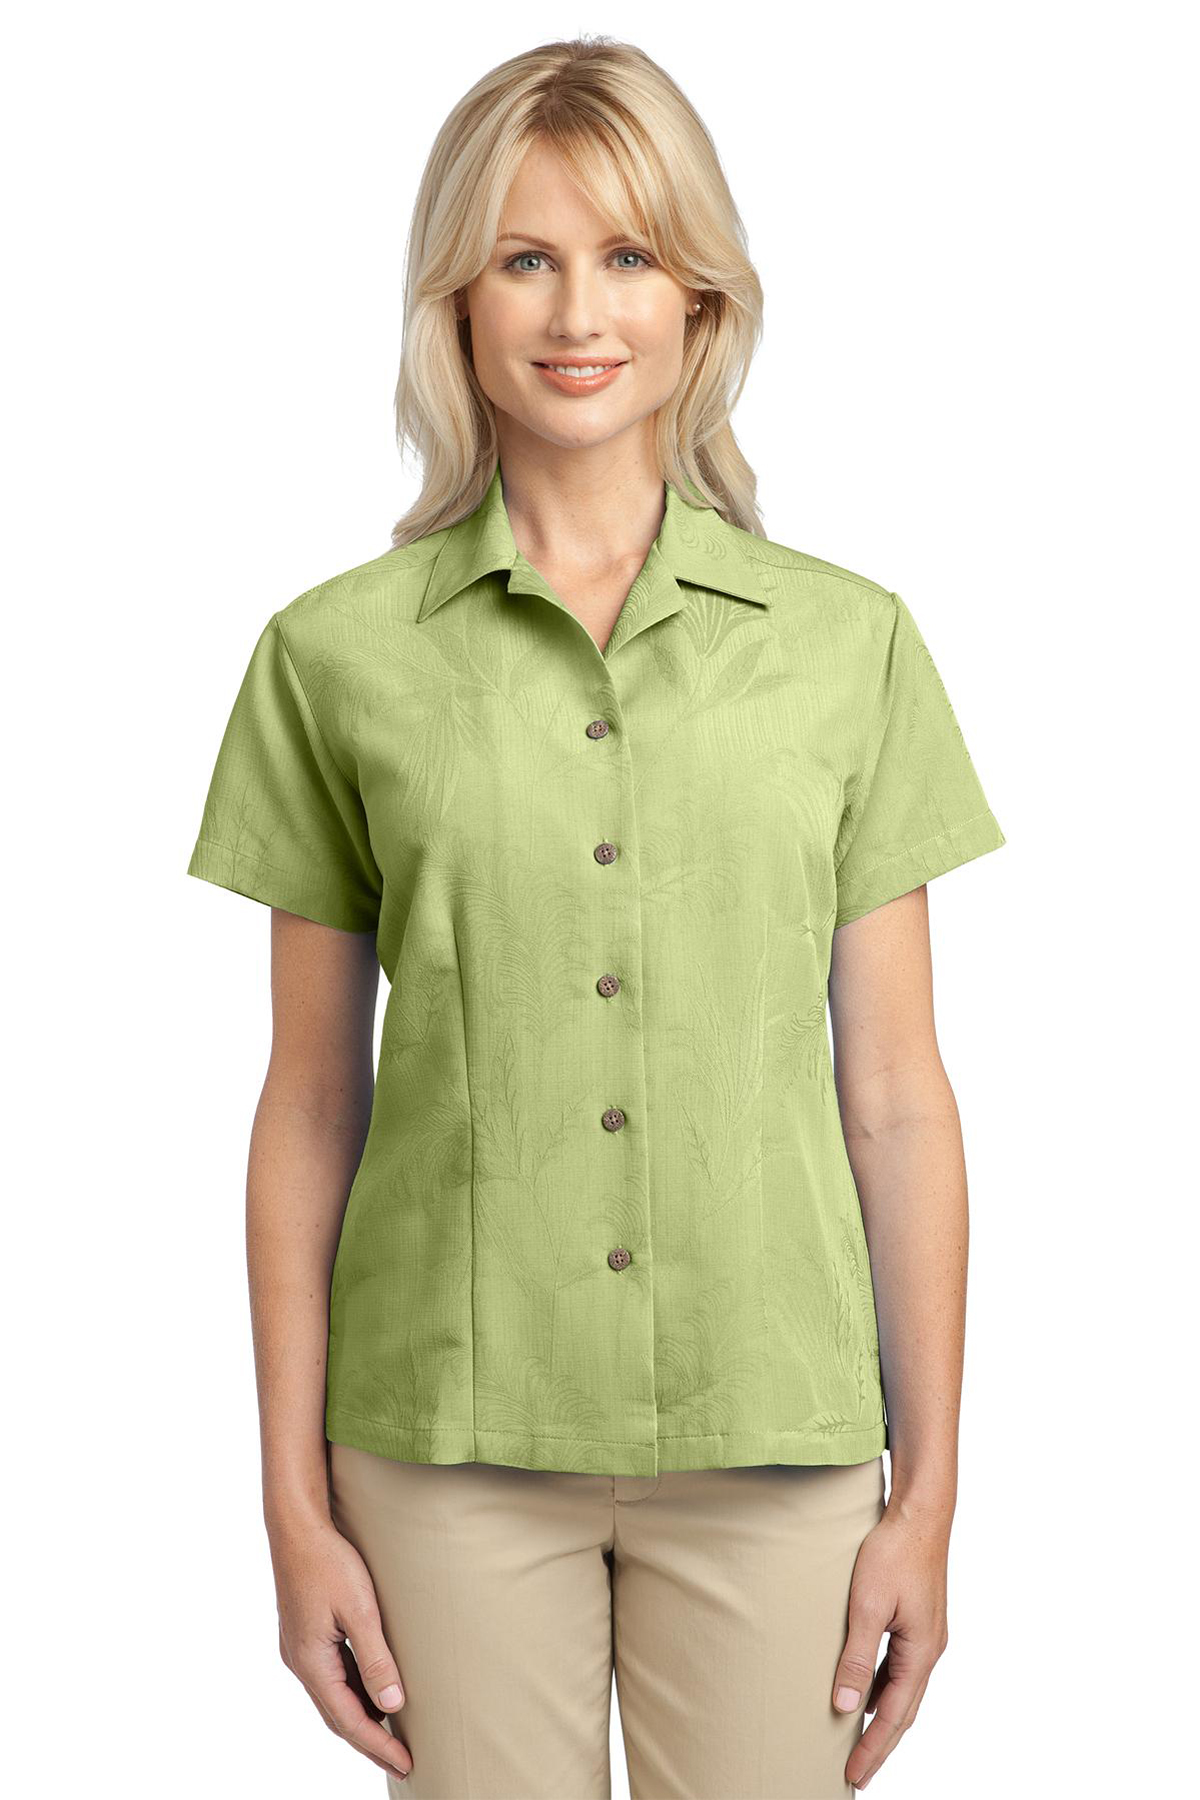 Woven-Shirts-Easy-Care-4